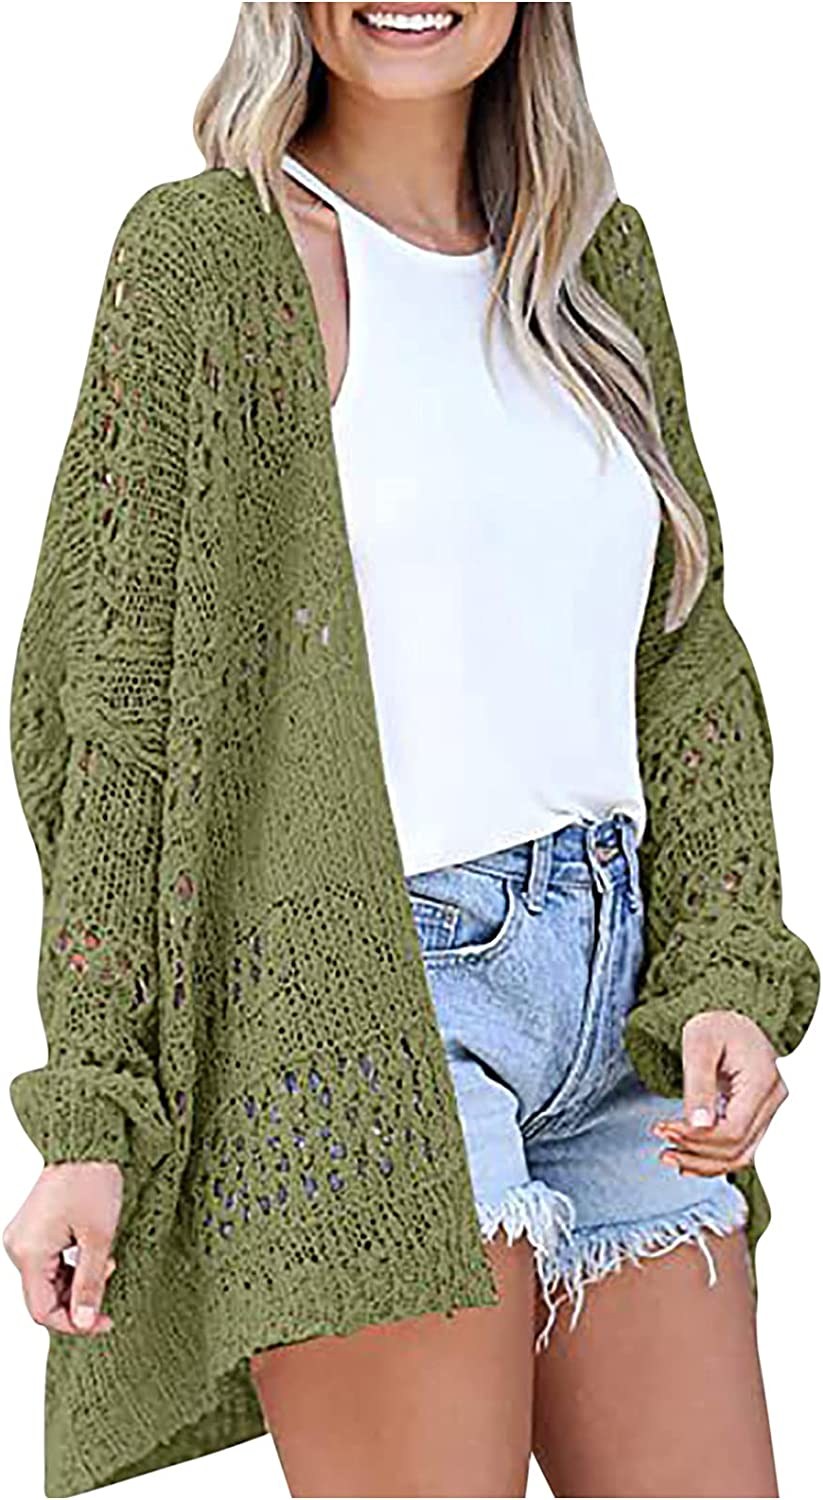 Women's Hollow Out Knit Cardigan Tops Autumn Solid Color Casual V-Neck Long Sleeve Sweater Ladies Loose Outerear